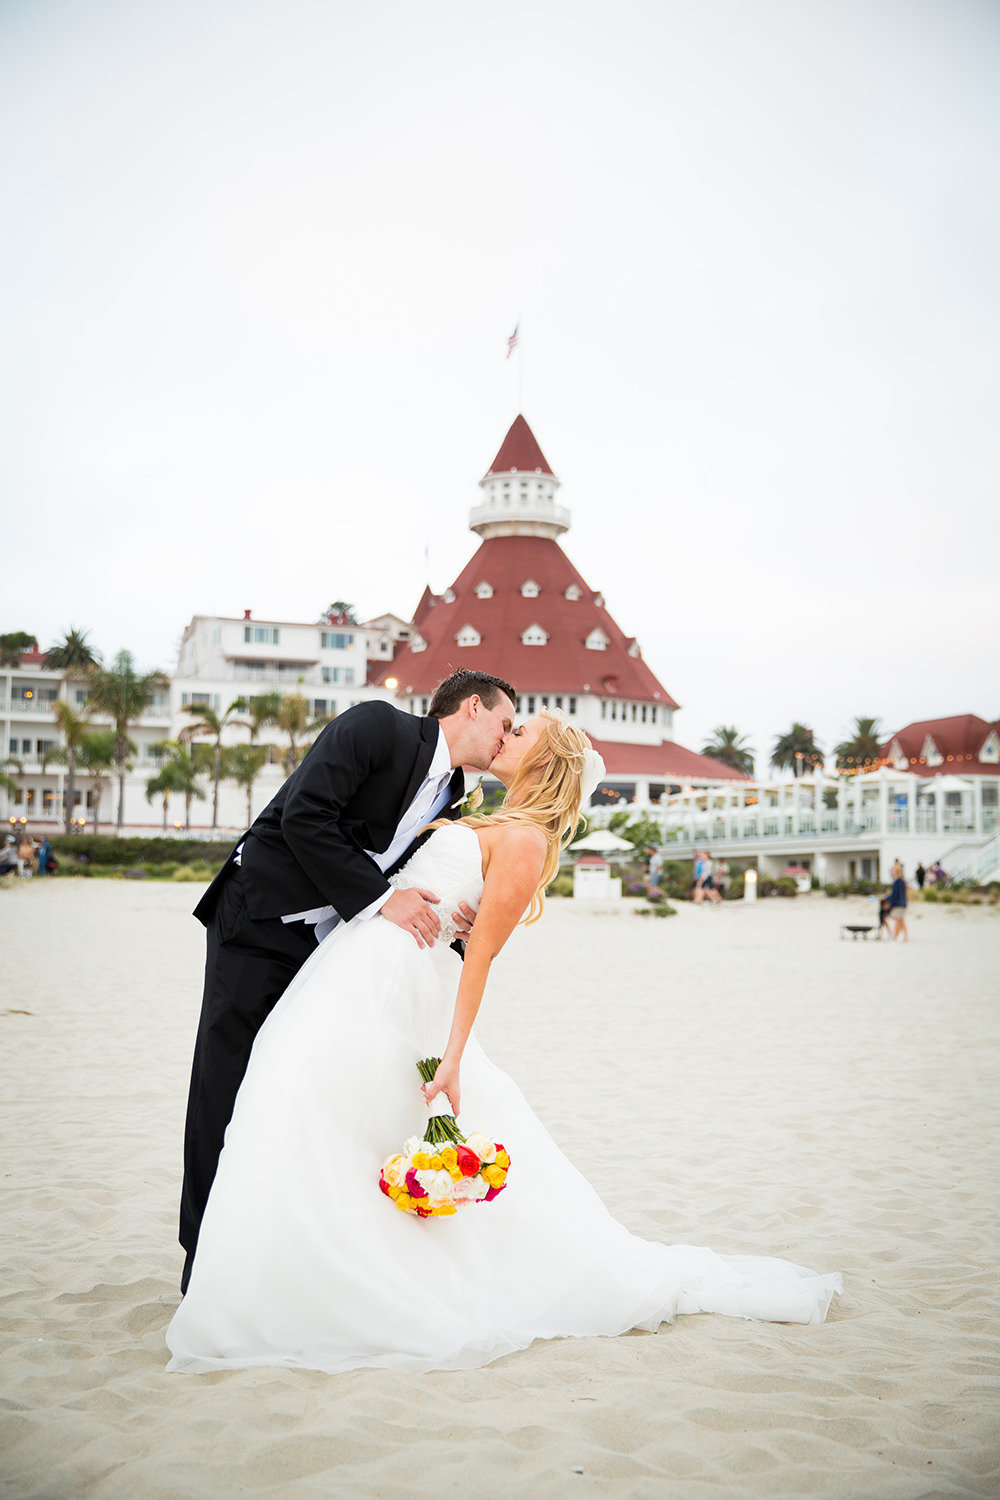 Dip Kiss on the beach in front of the Hotel Del Coronado